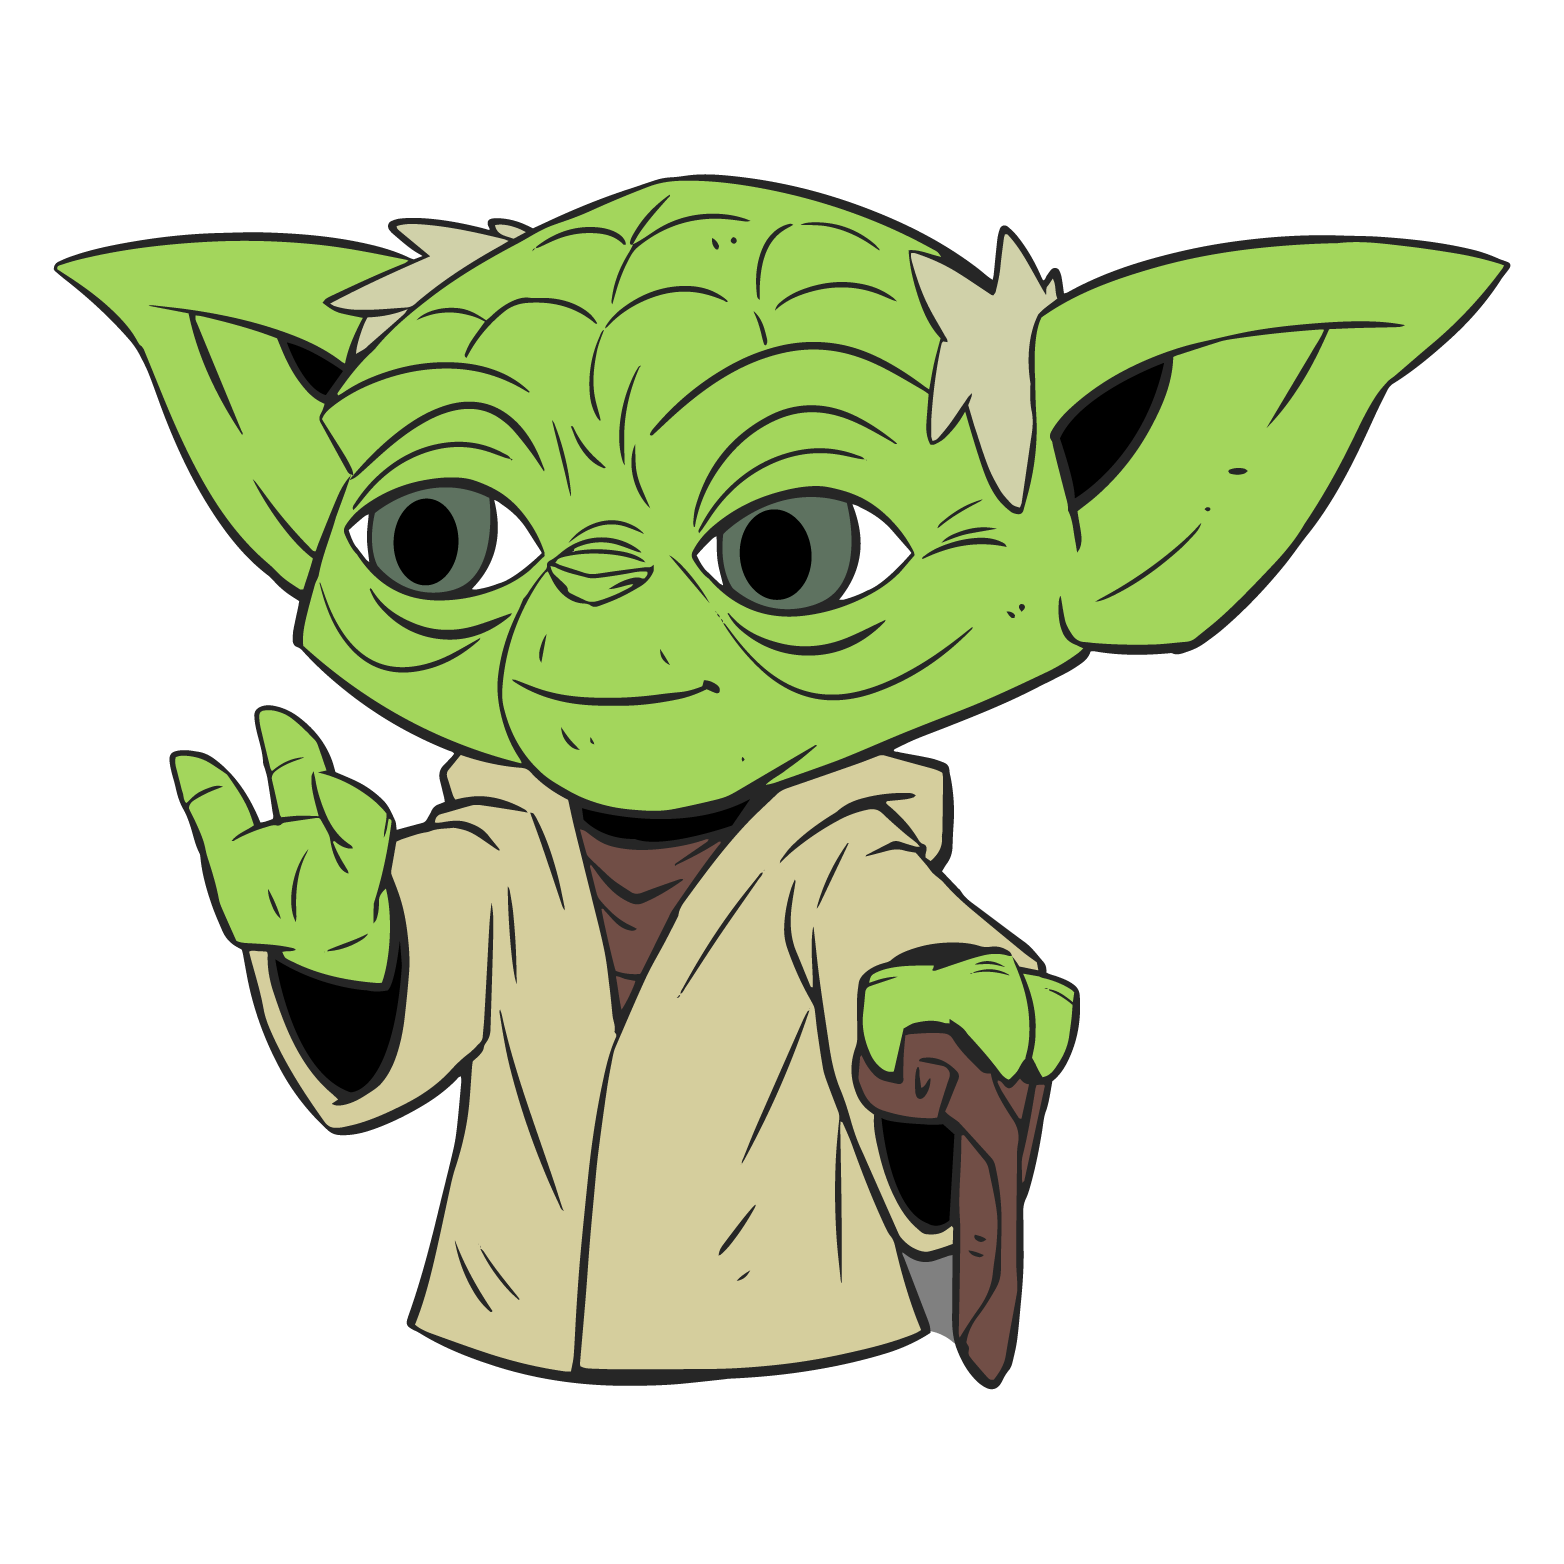 Yoda icon clipart clipart free library Star Wars Yoda Drawing | Free download best Star Wars Yoda ... clipart free library